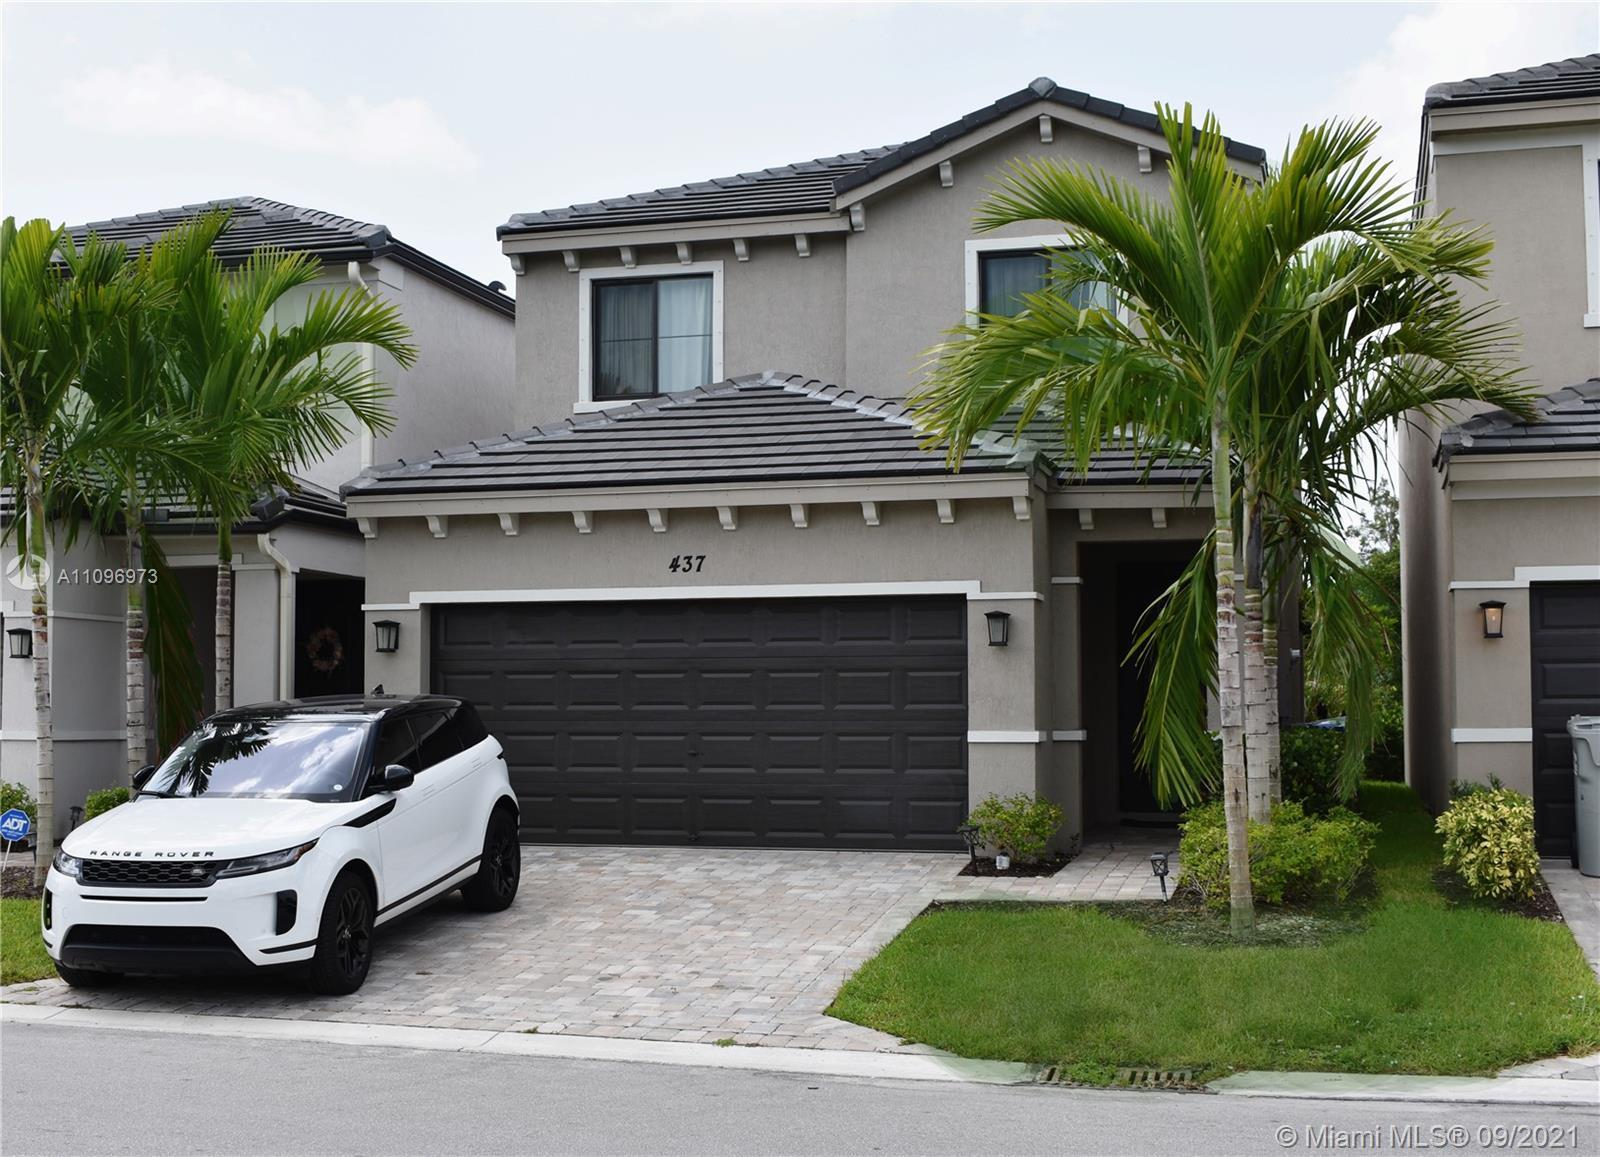 TWO-STORY NEW CONSTRUCTION SPACIOUS HOME. 3 bedroom/2.5 bath with 2 car garage. Incredible designer